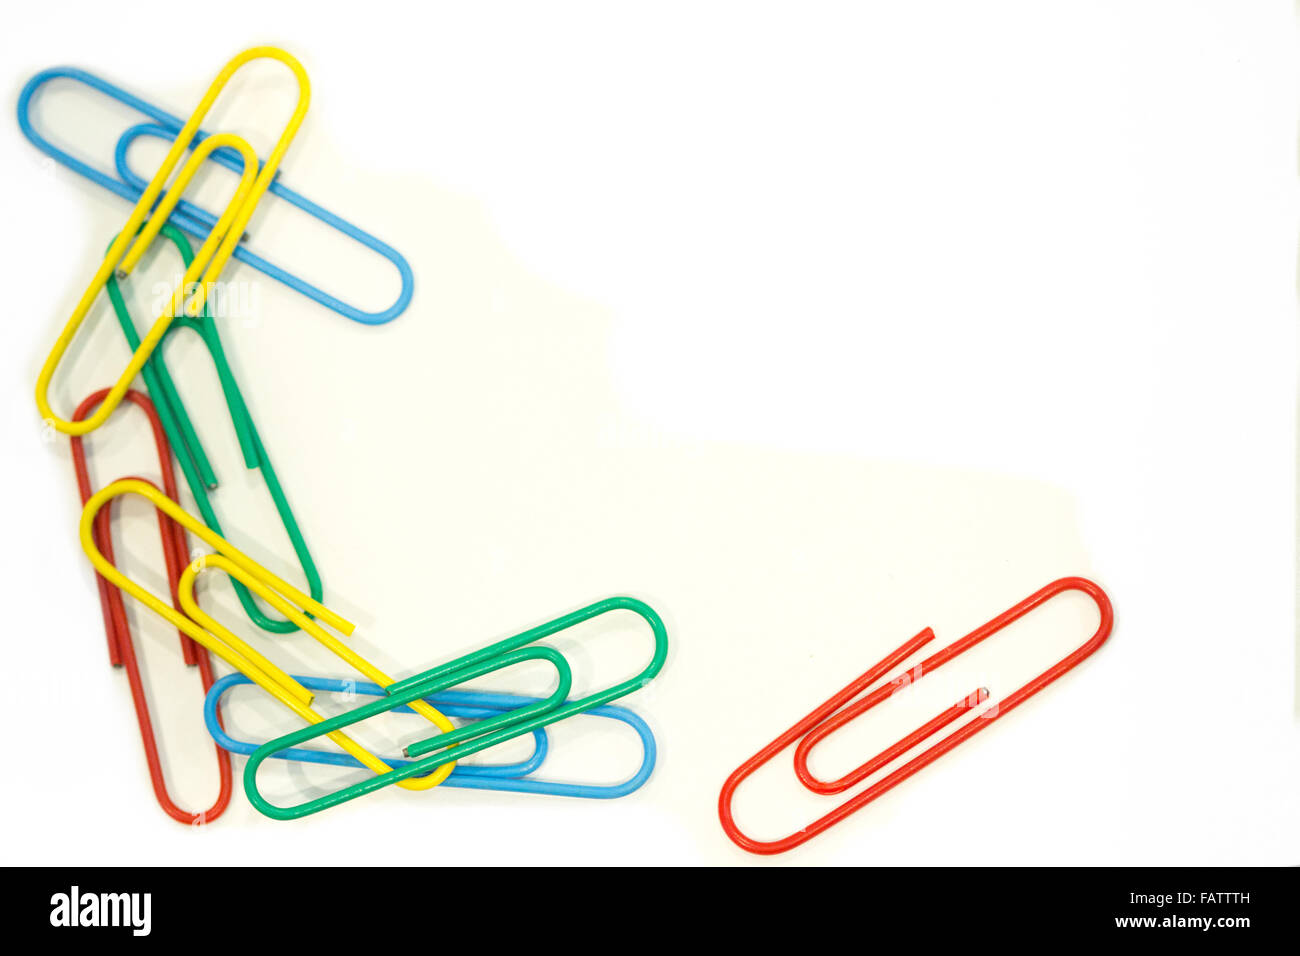 A chain of mutli-colored paper clips - Stock Image